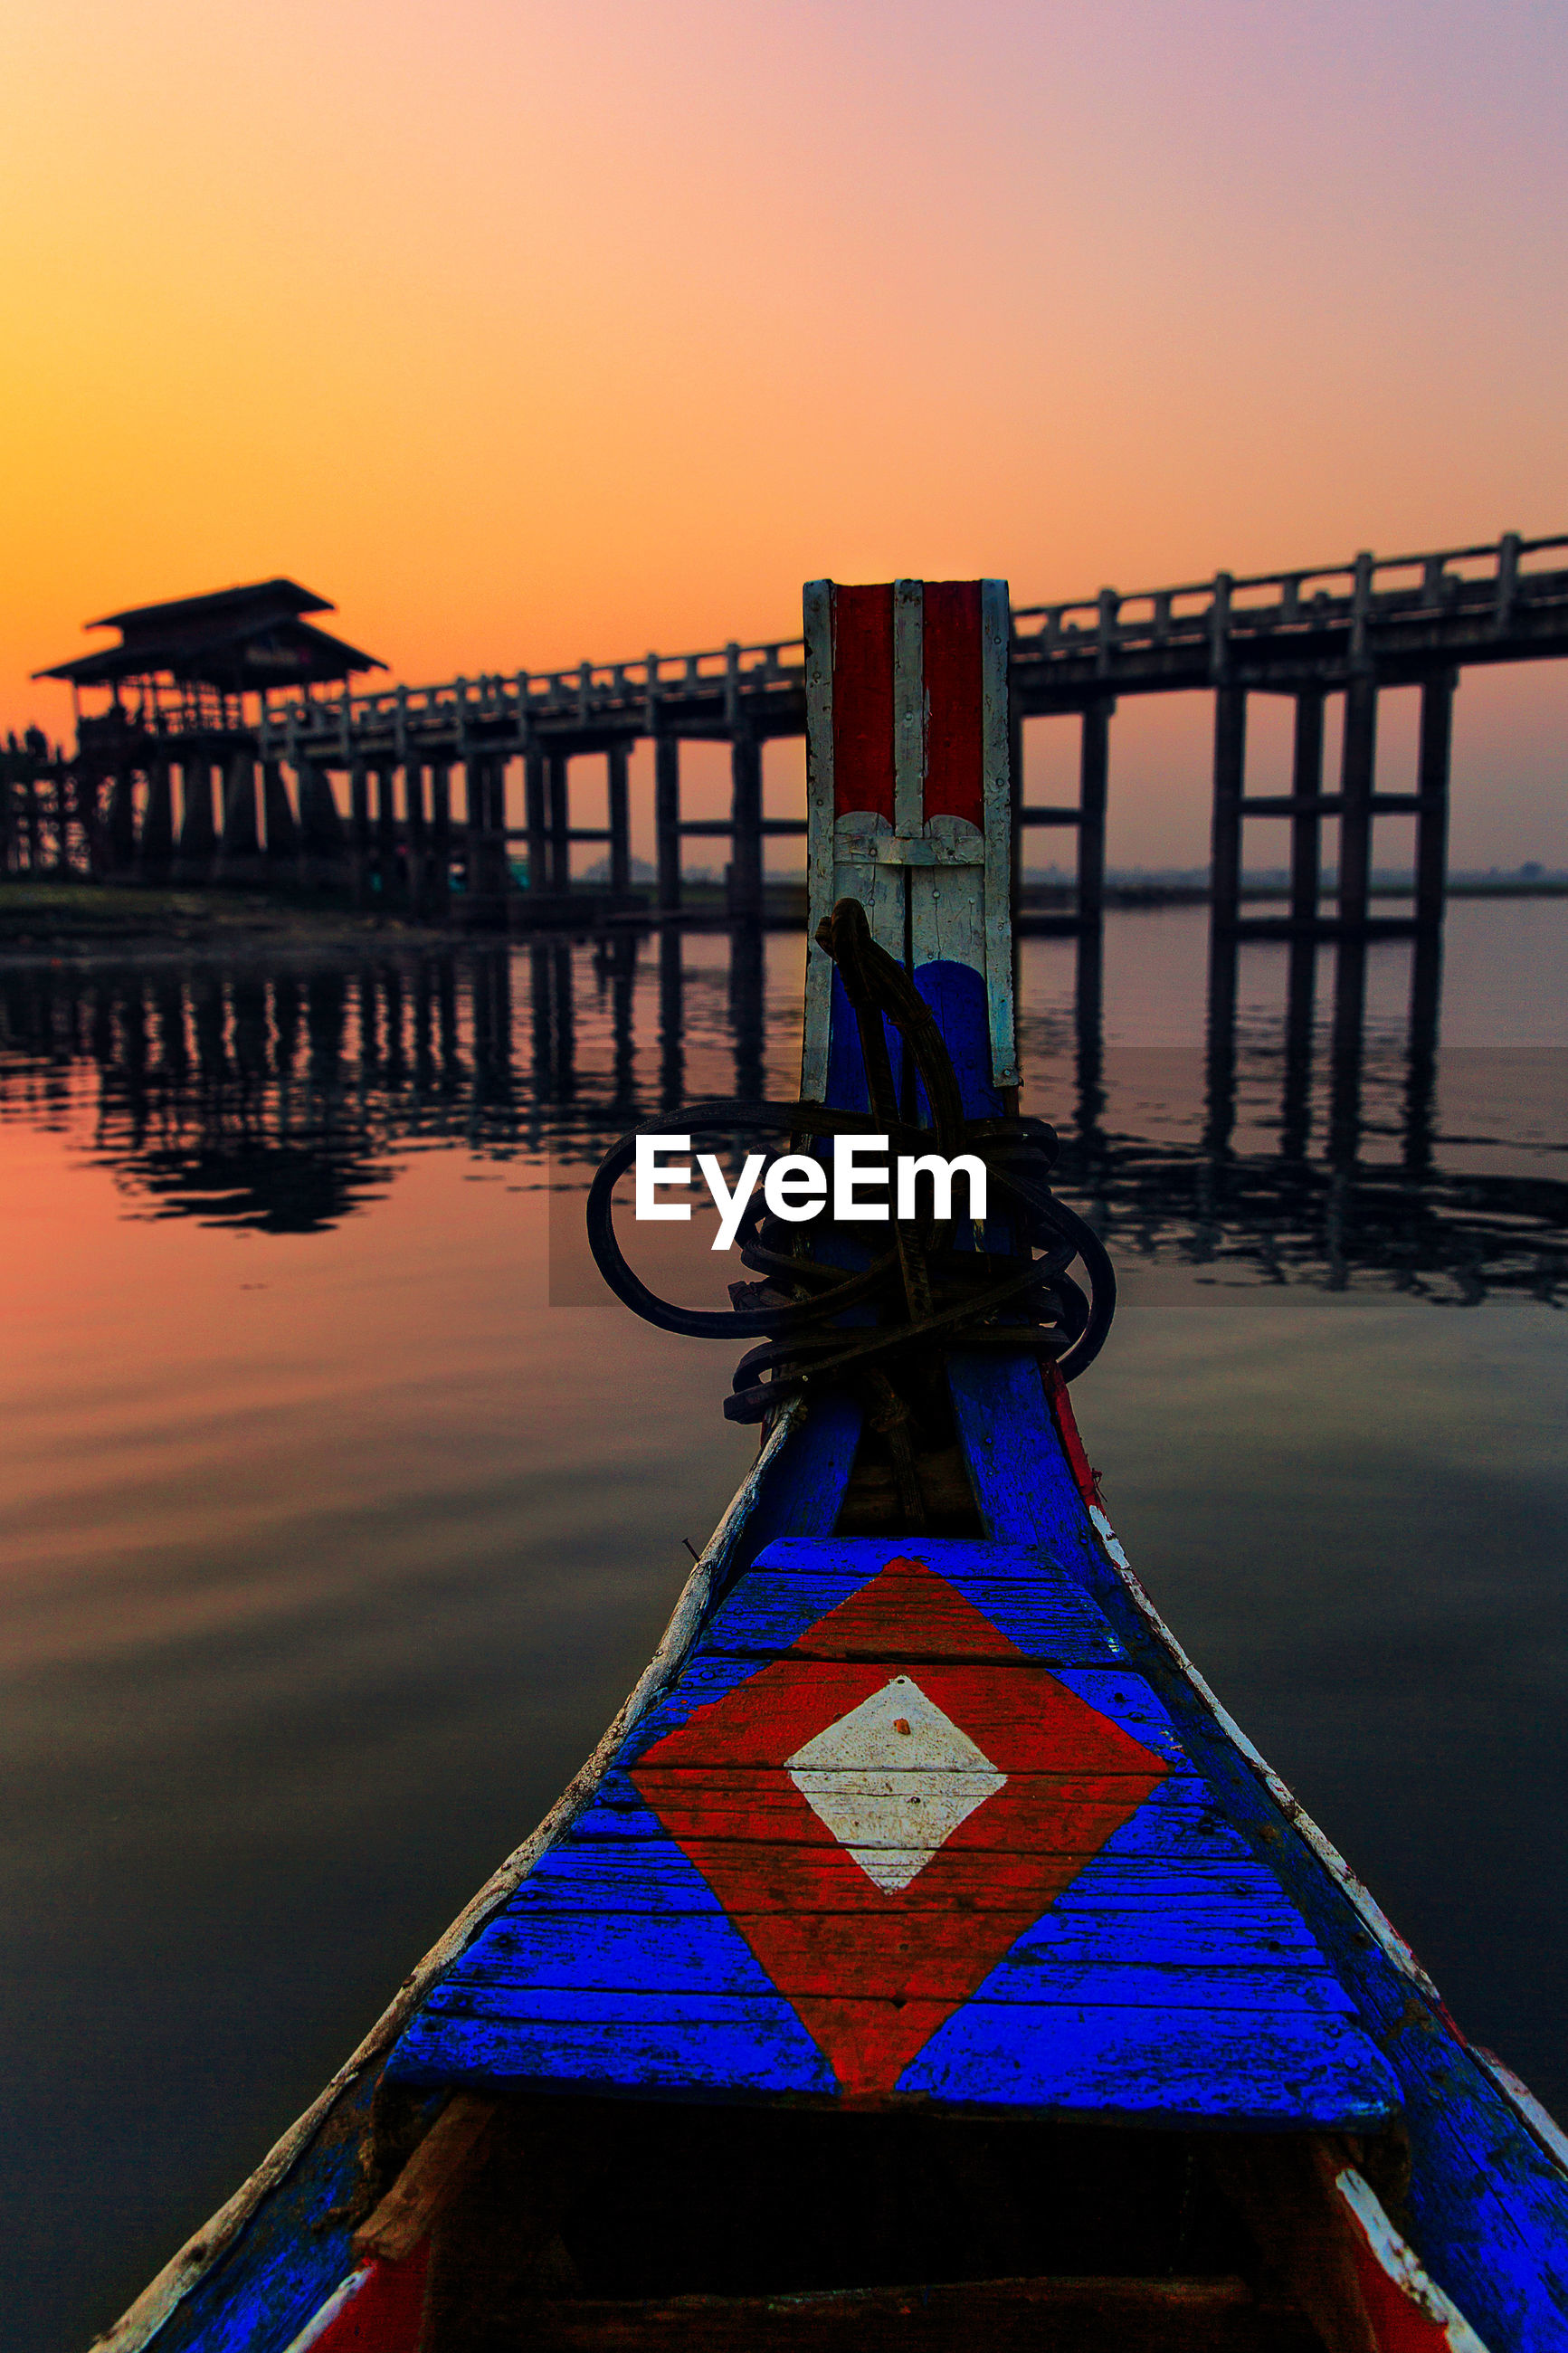 VIEW OF PIER IN SEA AT SUNSET